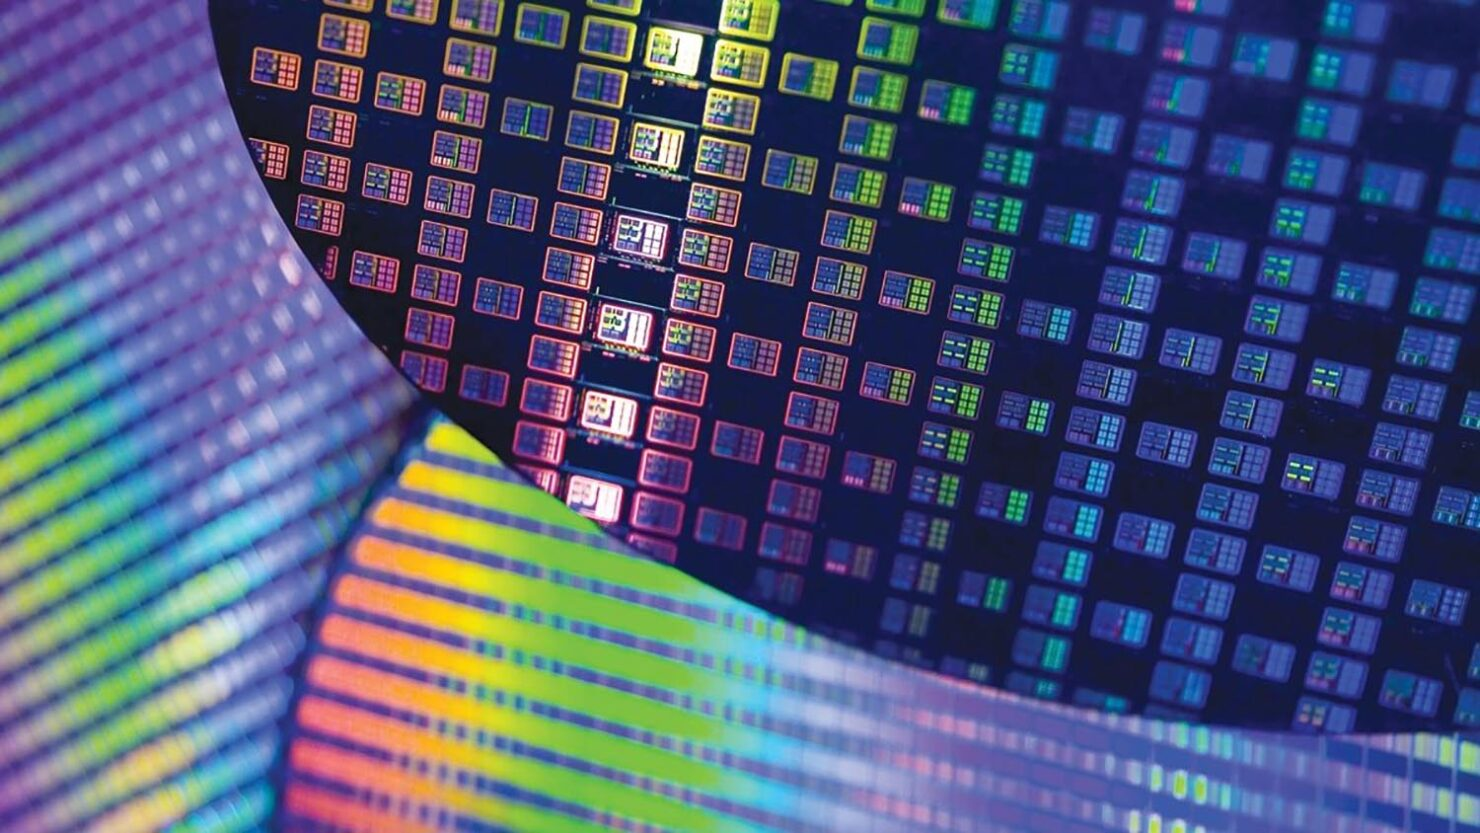 TSMC to produce 3NM and 5NM chips